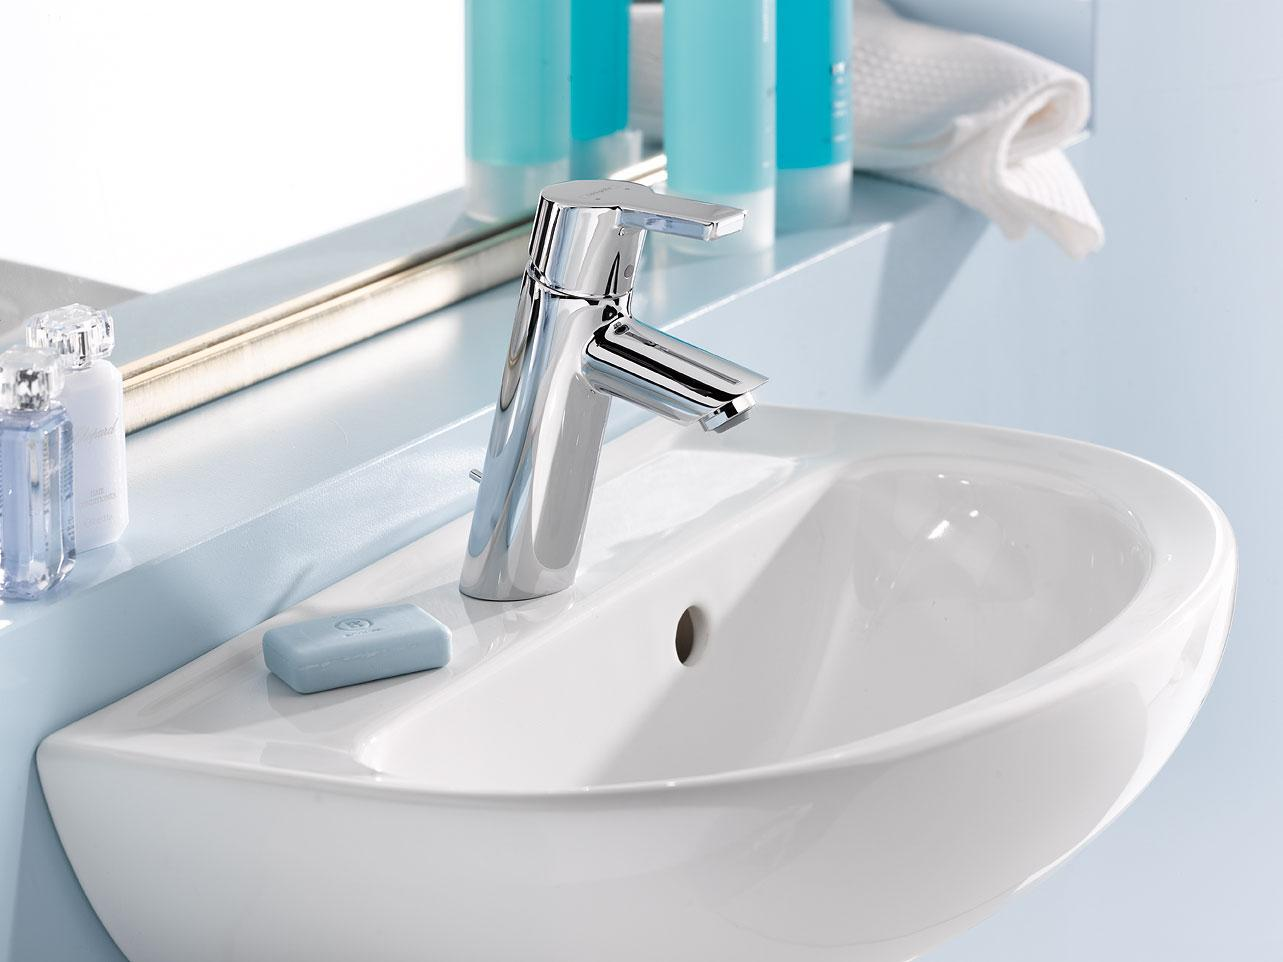 Hansgrohe mitigeur de lavabo status m chrome 14180000 for Amazon lavabos